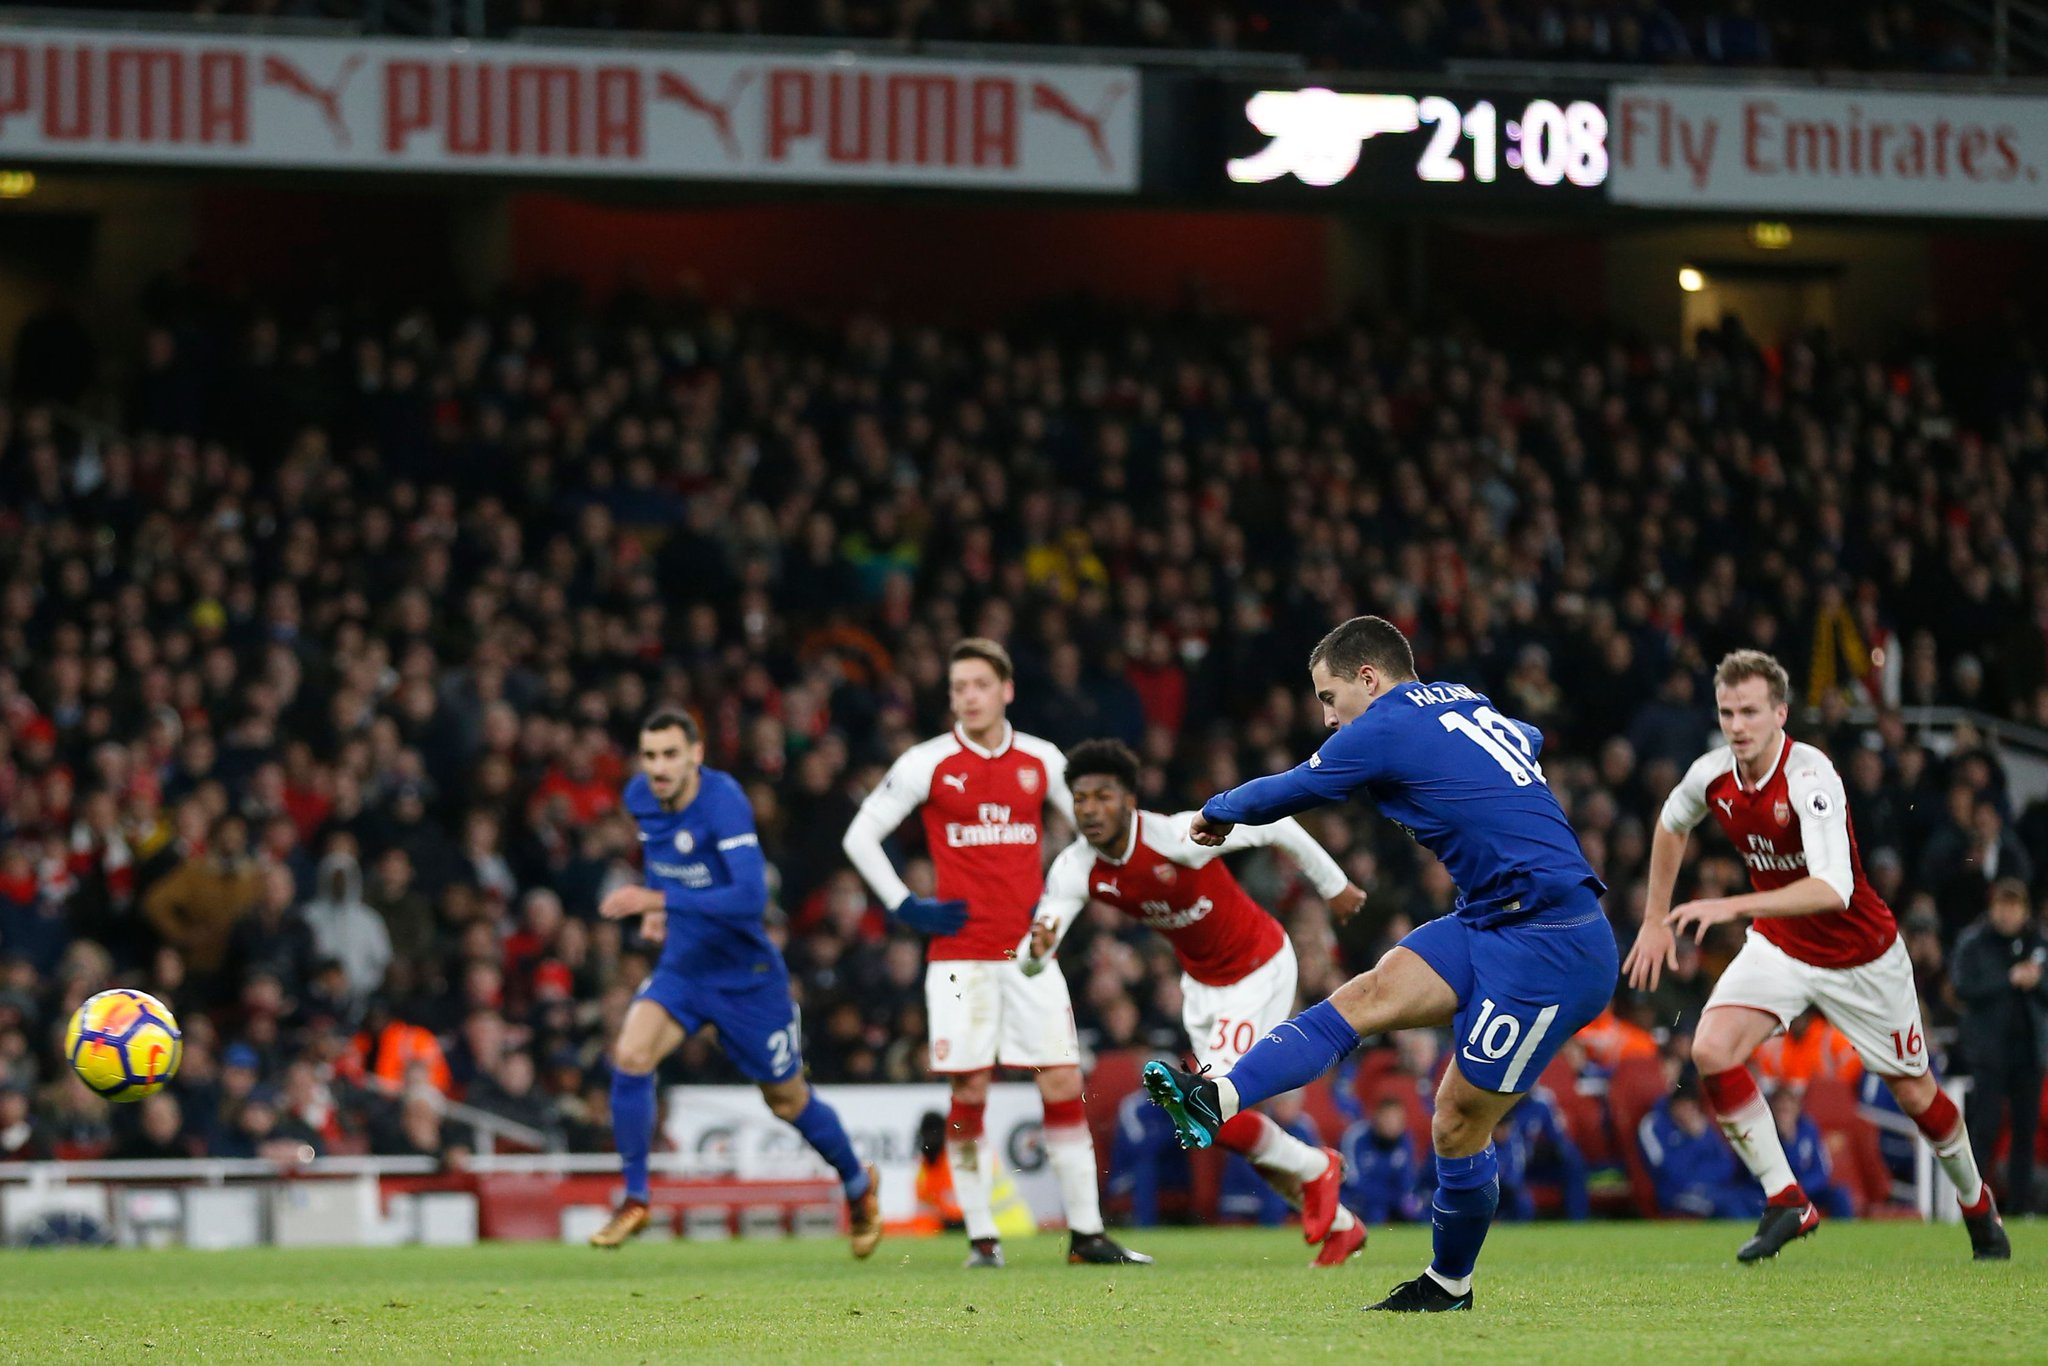 Moses Struggles, Iwobi Benched As Arsenal Hold Chelsea In Emirates Thriller